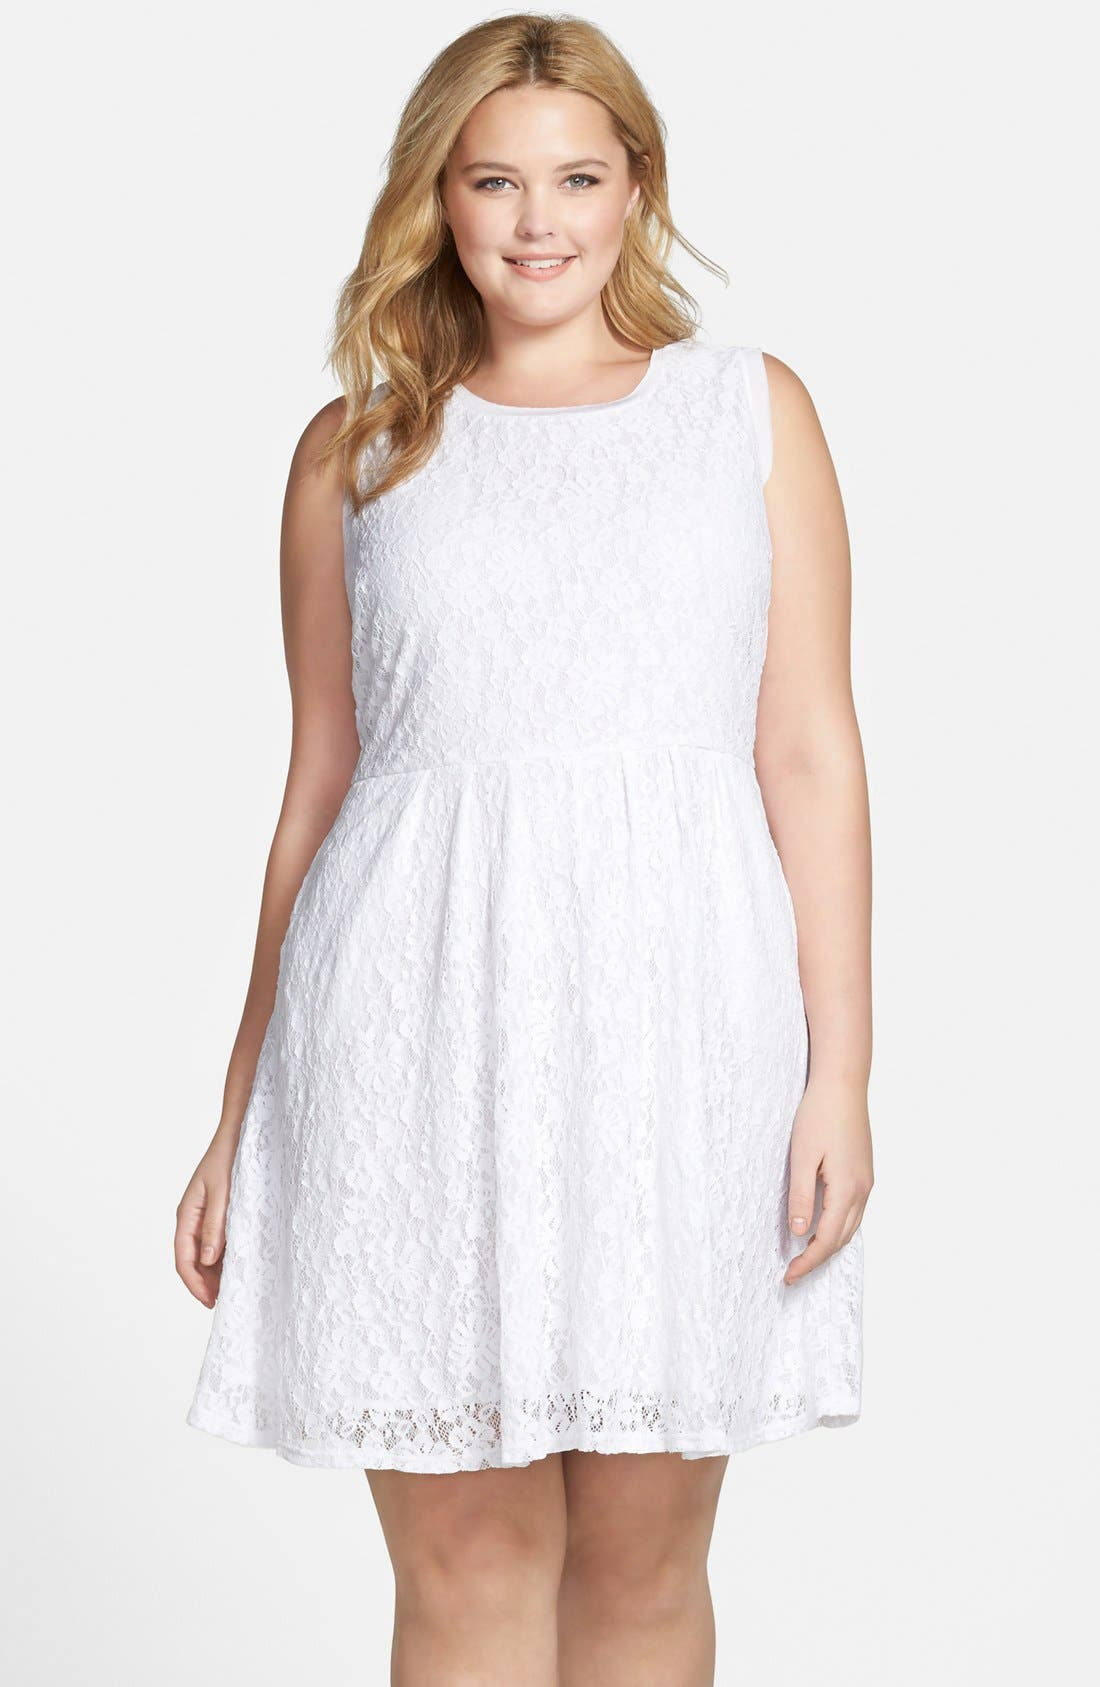 Main Image - Two by Vince Camuto Floral Lace Babydoll Dress (Plus Size)